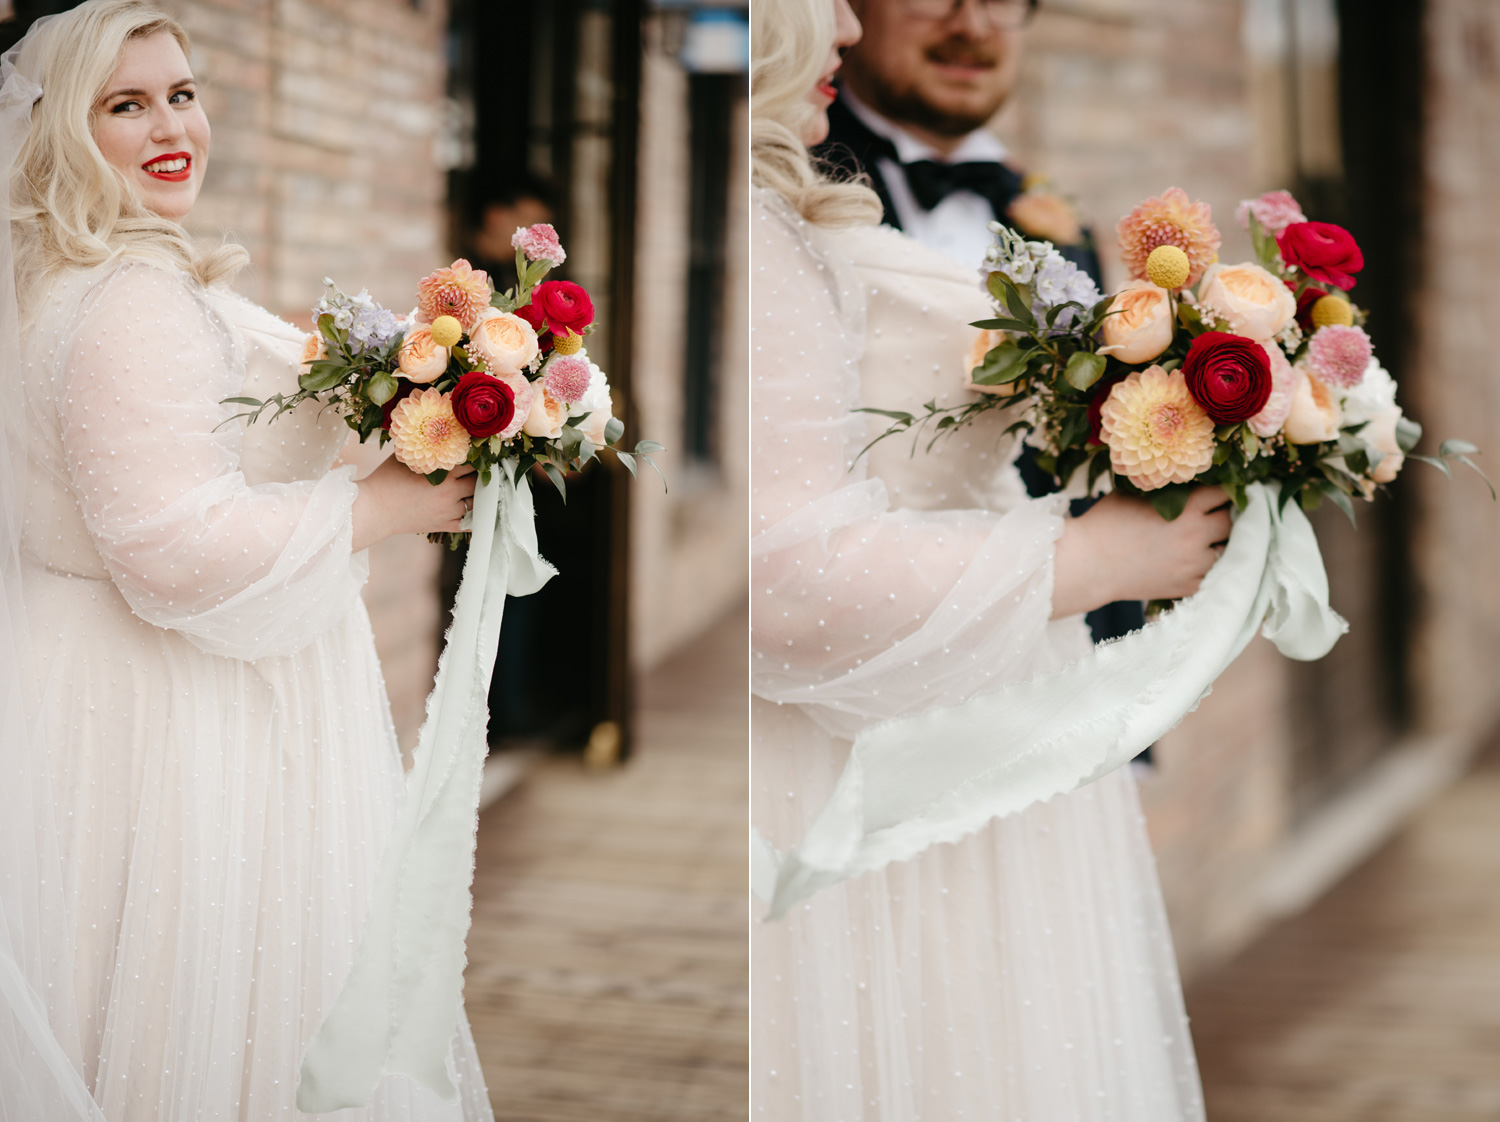 Bride holding bouquet of vibrant floral with silk ribbon